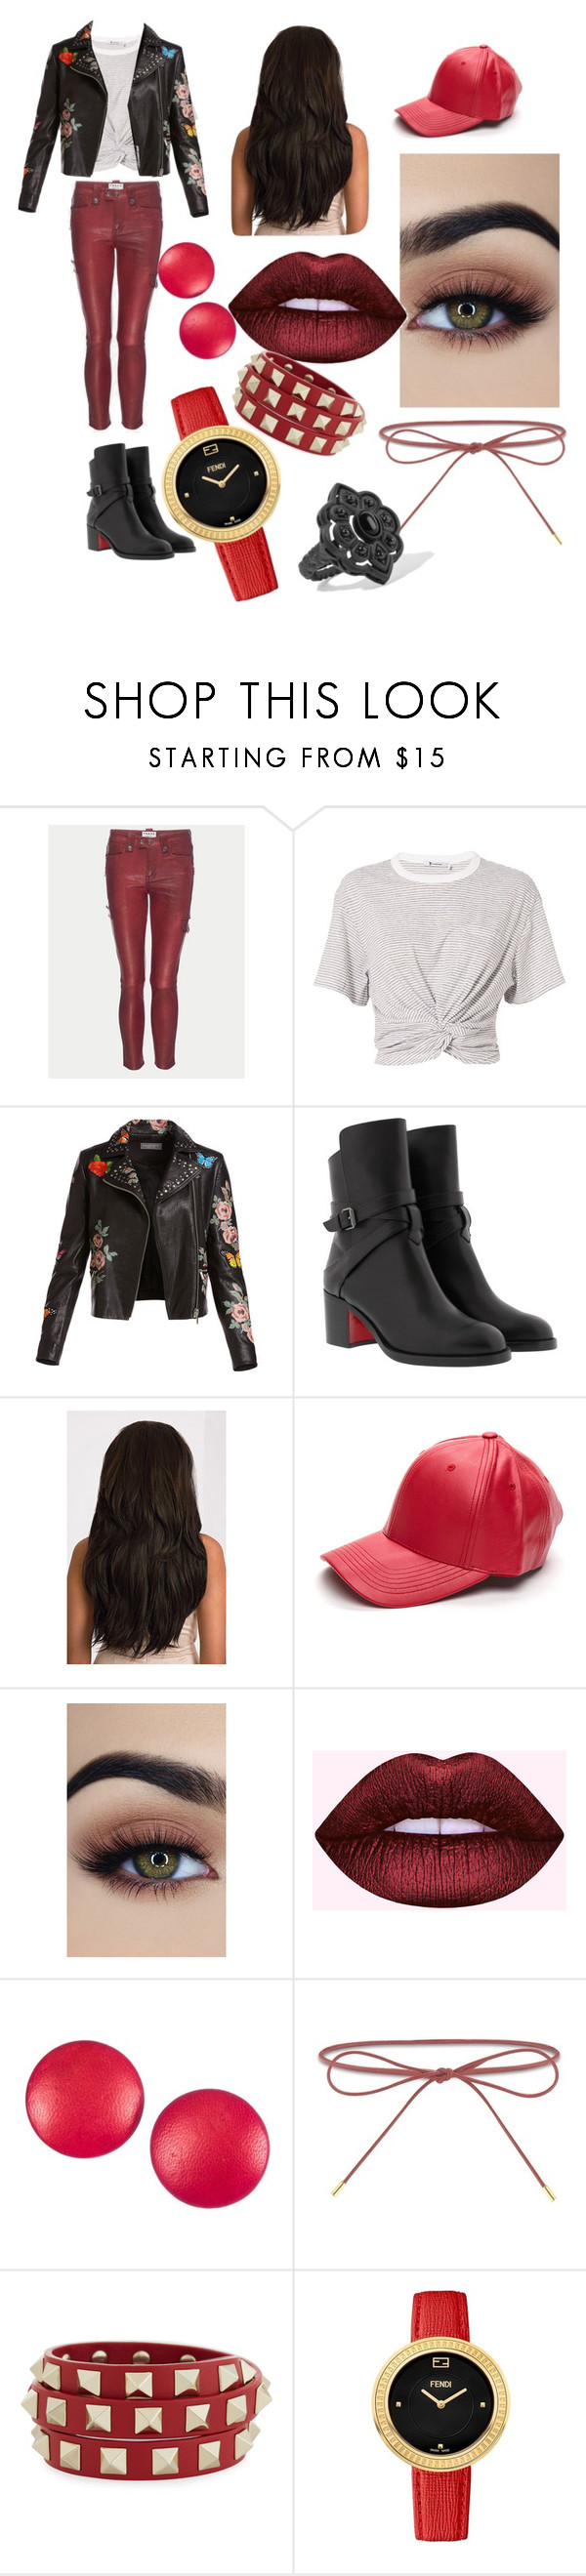 """""""31"""" by urooj684 ❤ liked on Polyvore featuring Frame, T By Alexander Wang, Bagatelle, Christian Louboutin, Charles Jourdan, Elizabeth and James, Valentino, Fendi and Gucci"""